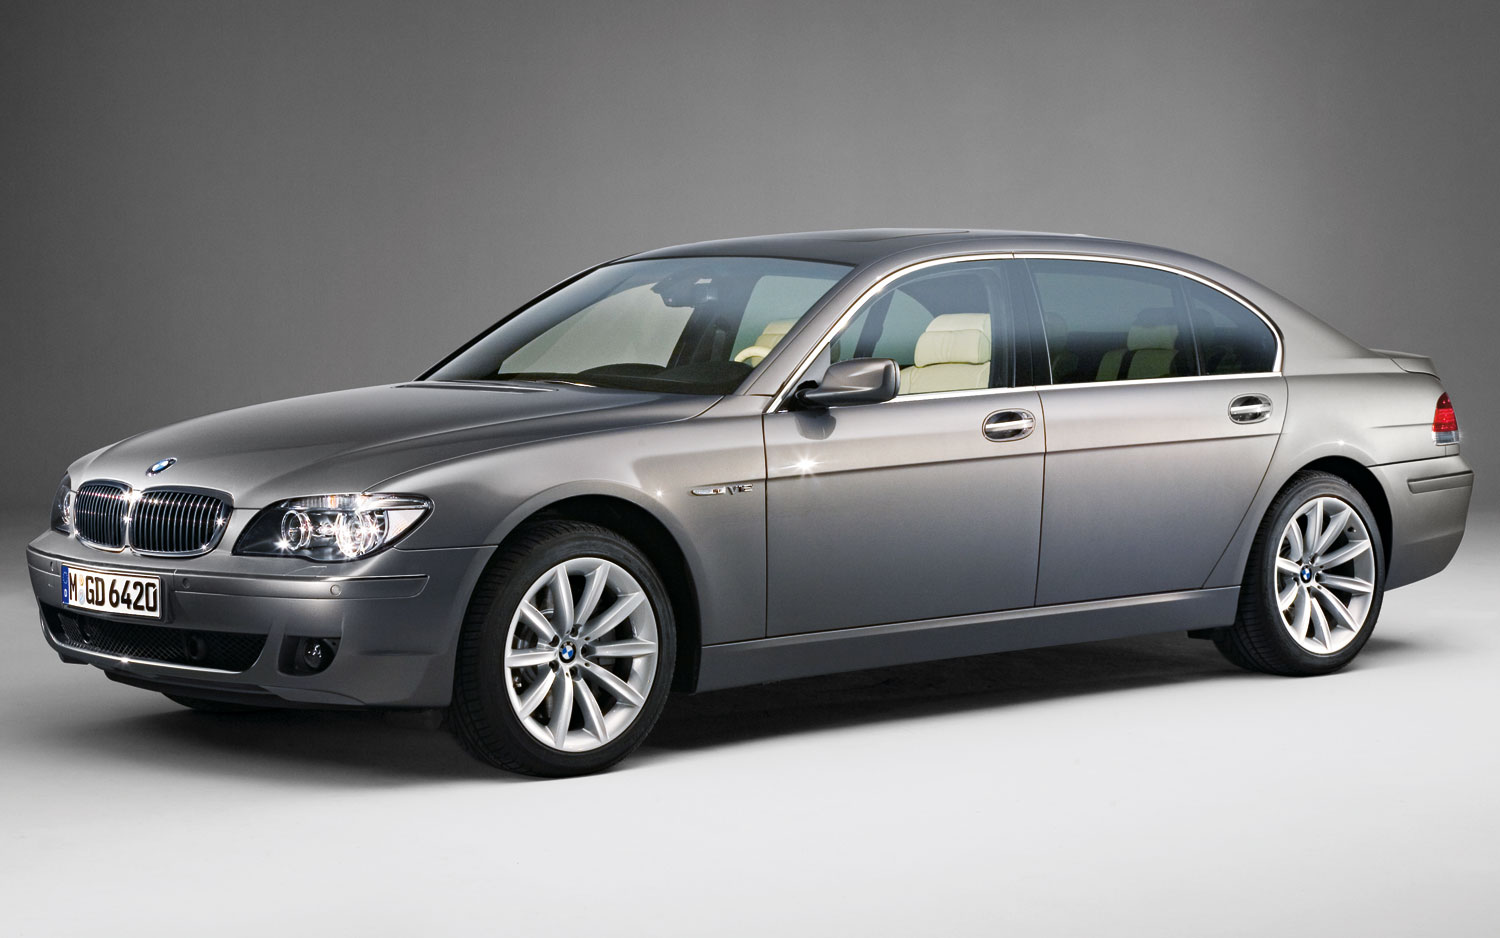 Recalls Faulty 2005-2007 BMW 7 Series Soft-Close Doors Could Lead to  Occupant Ejection  & Recalls: Faulty 2005-2007 BMW 7 Series Soft-Close Doors Could Lead ...